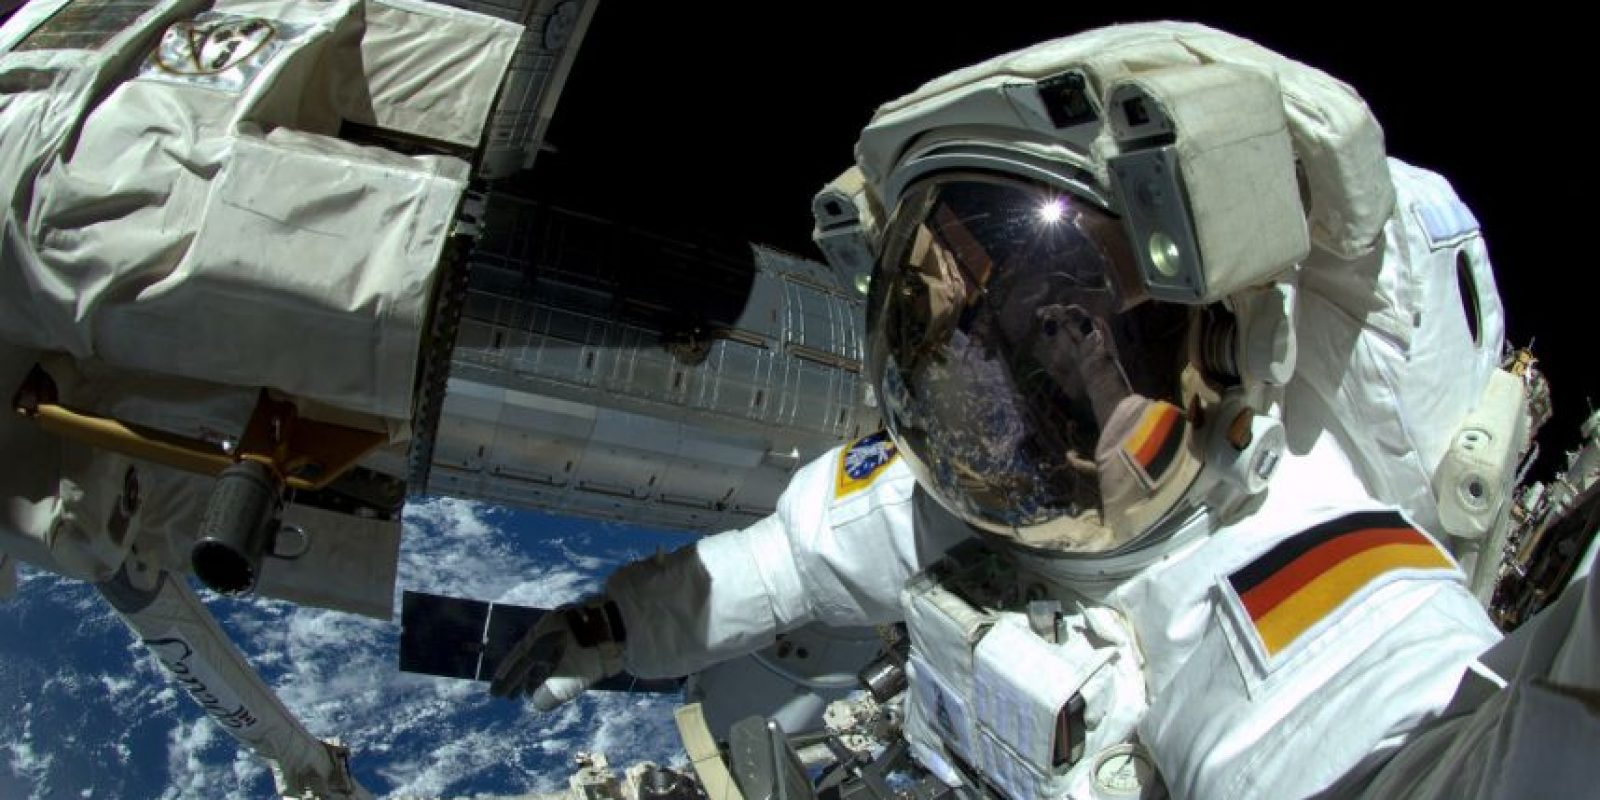 8. Ponerse un traje espacial de la NASA tarda en promedio 45 minutos. Foto: Getty Images